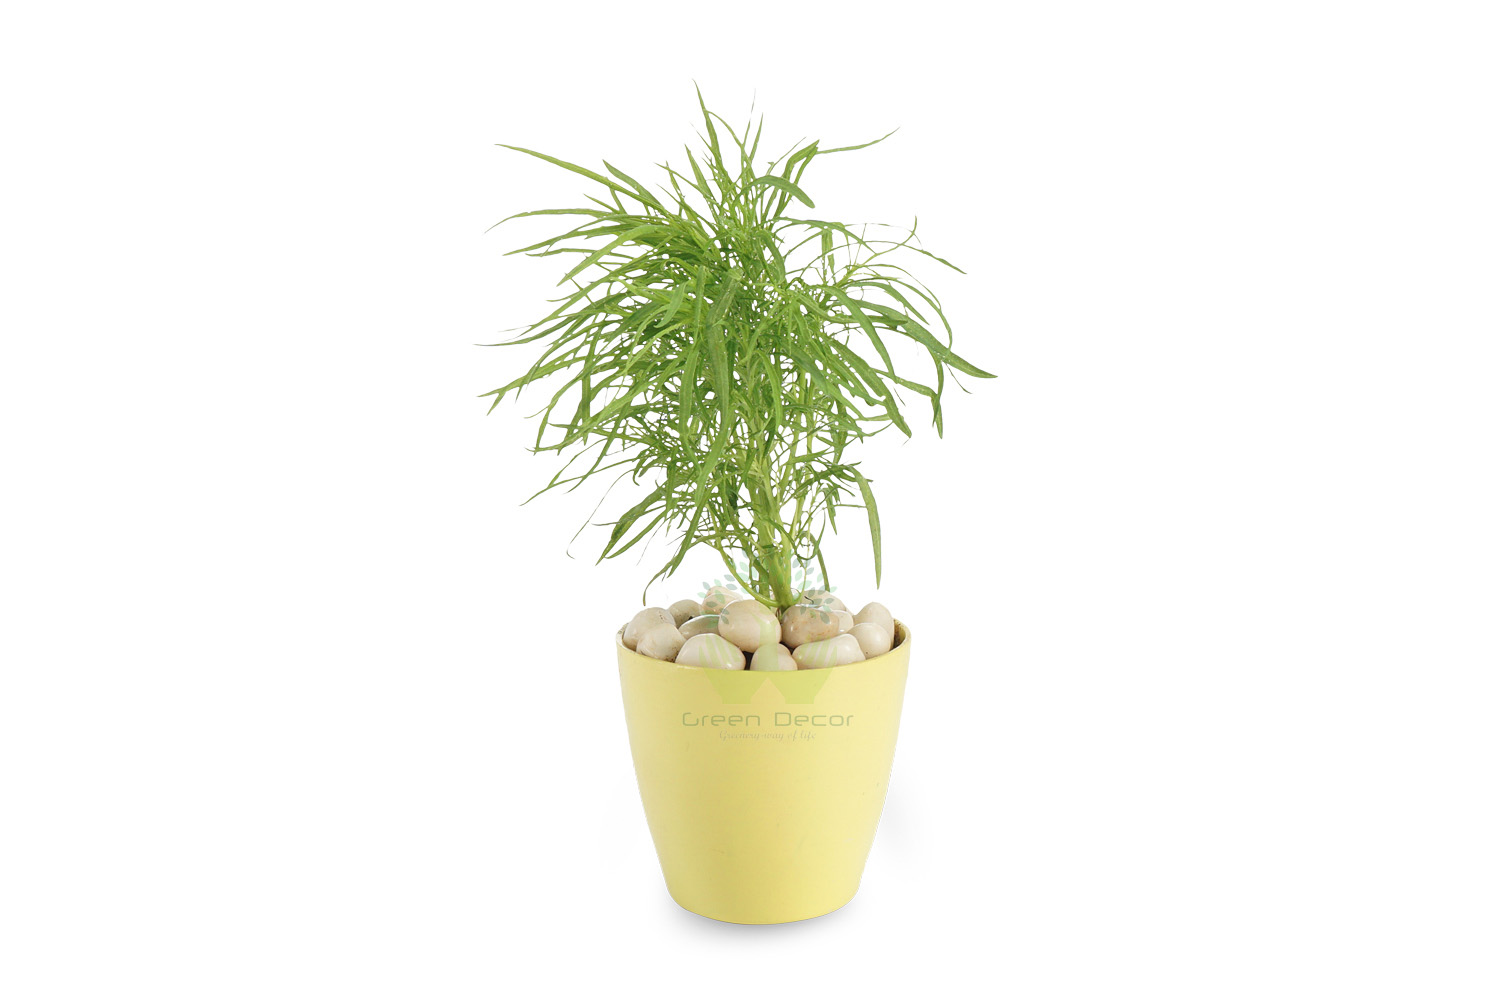 Buy kochia Plants Front View , Yellow Pots and seeds in Delhi NCR by the best online nursery shop Greendecor.